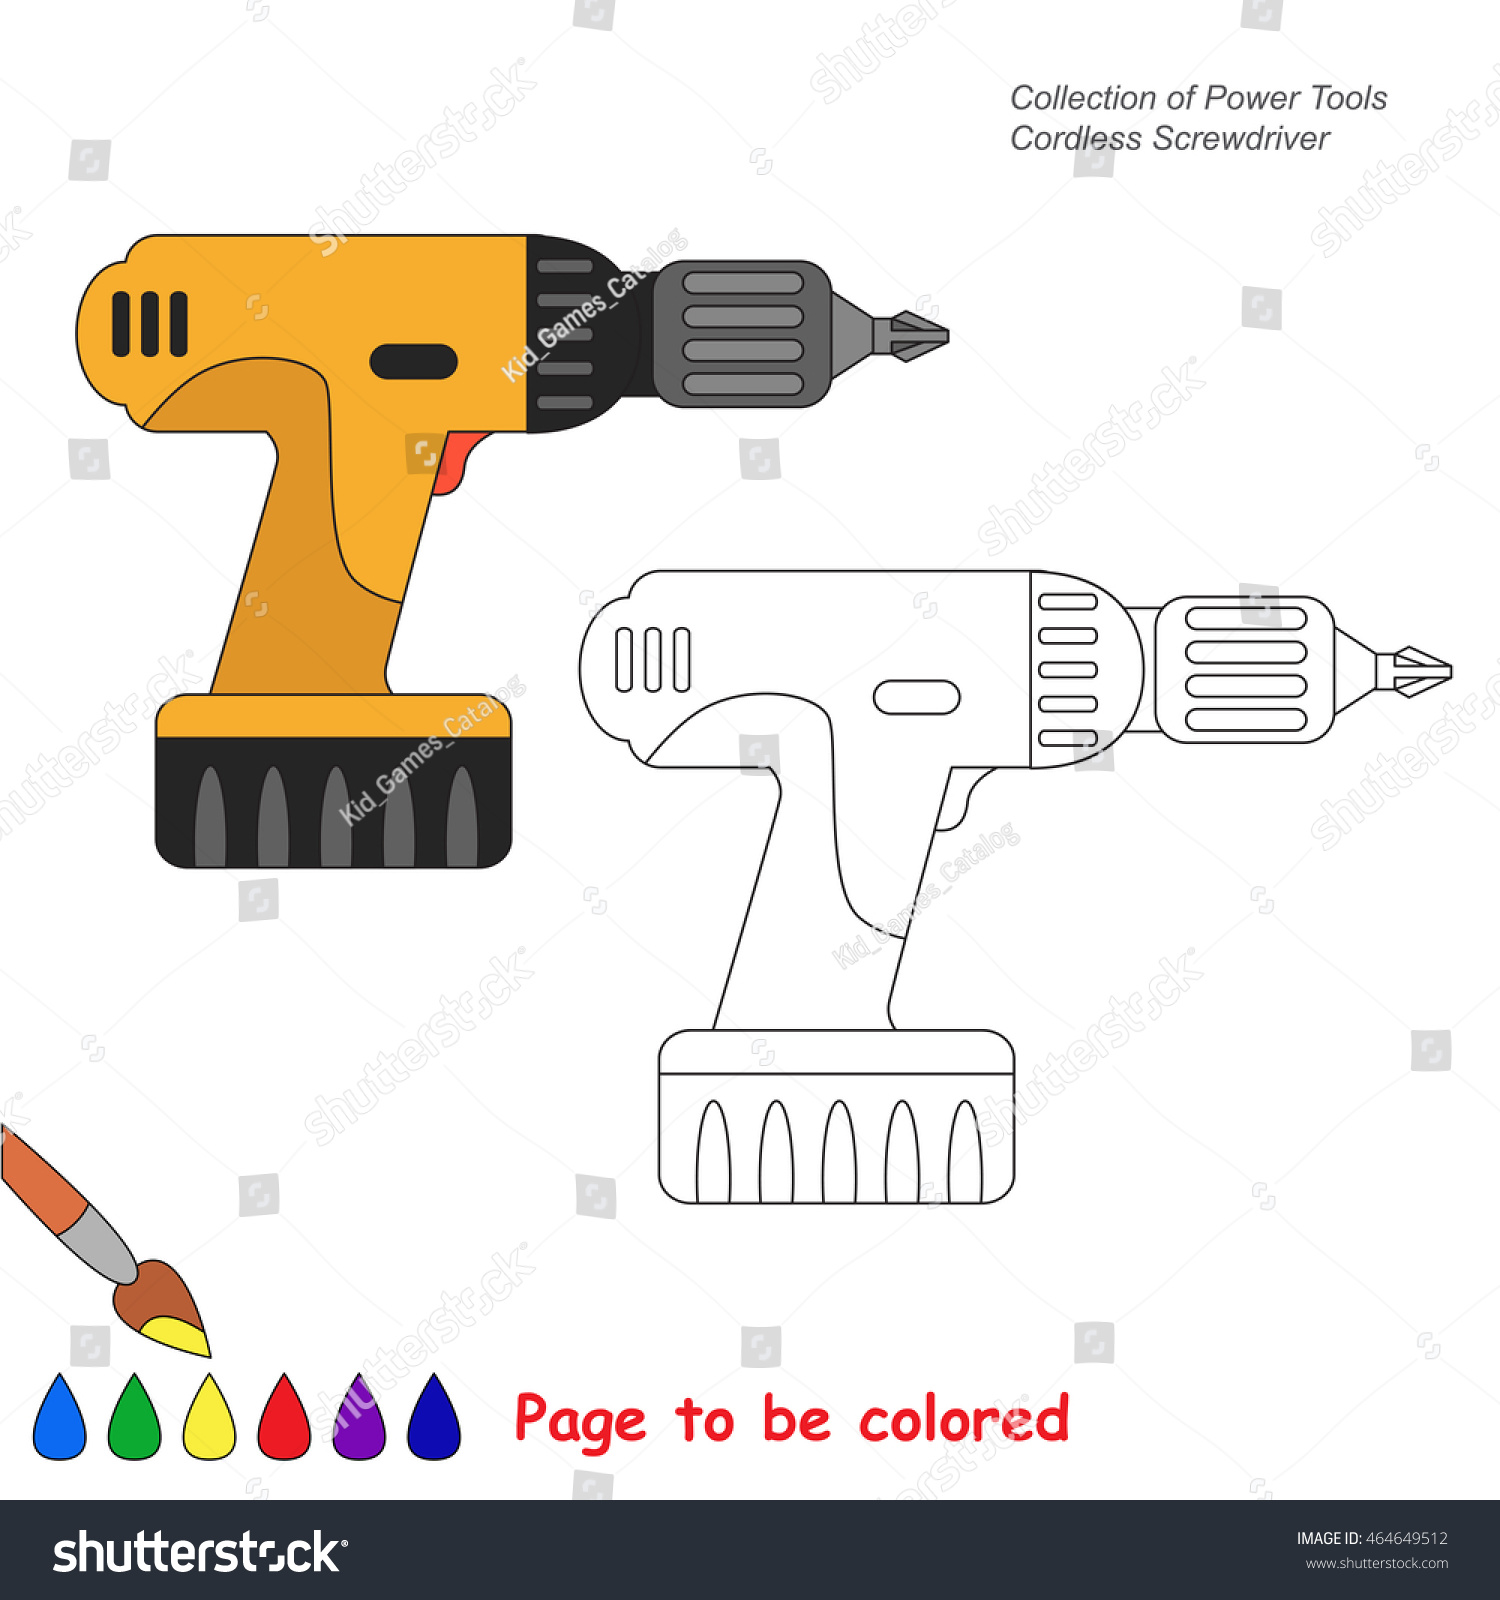 Beautiful Tools Coloring Pages Screwdriver Images - Coloring 2018 ...